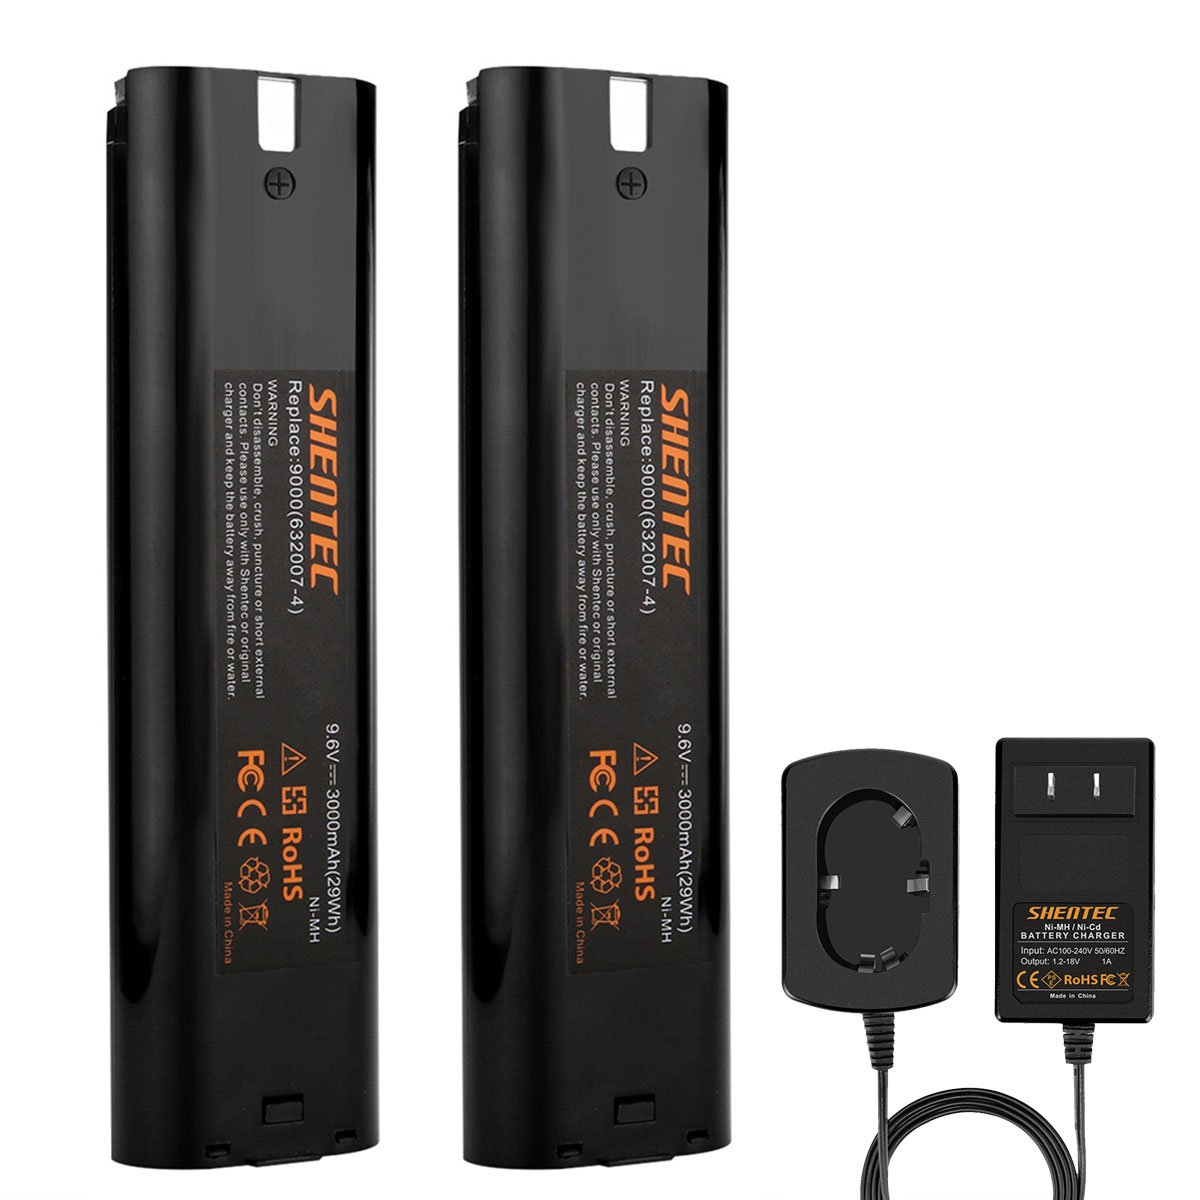 Shentec 2 Pack Ni-MH 3.0Ah 9.6V Battery Compatible with Makita 9.6V 9000 9001 9002 9033 9600 193890-9 192696-2 632007-4 (Battery Charger Include)